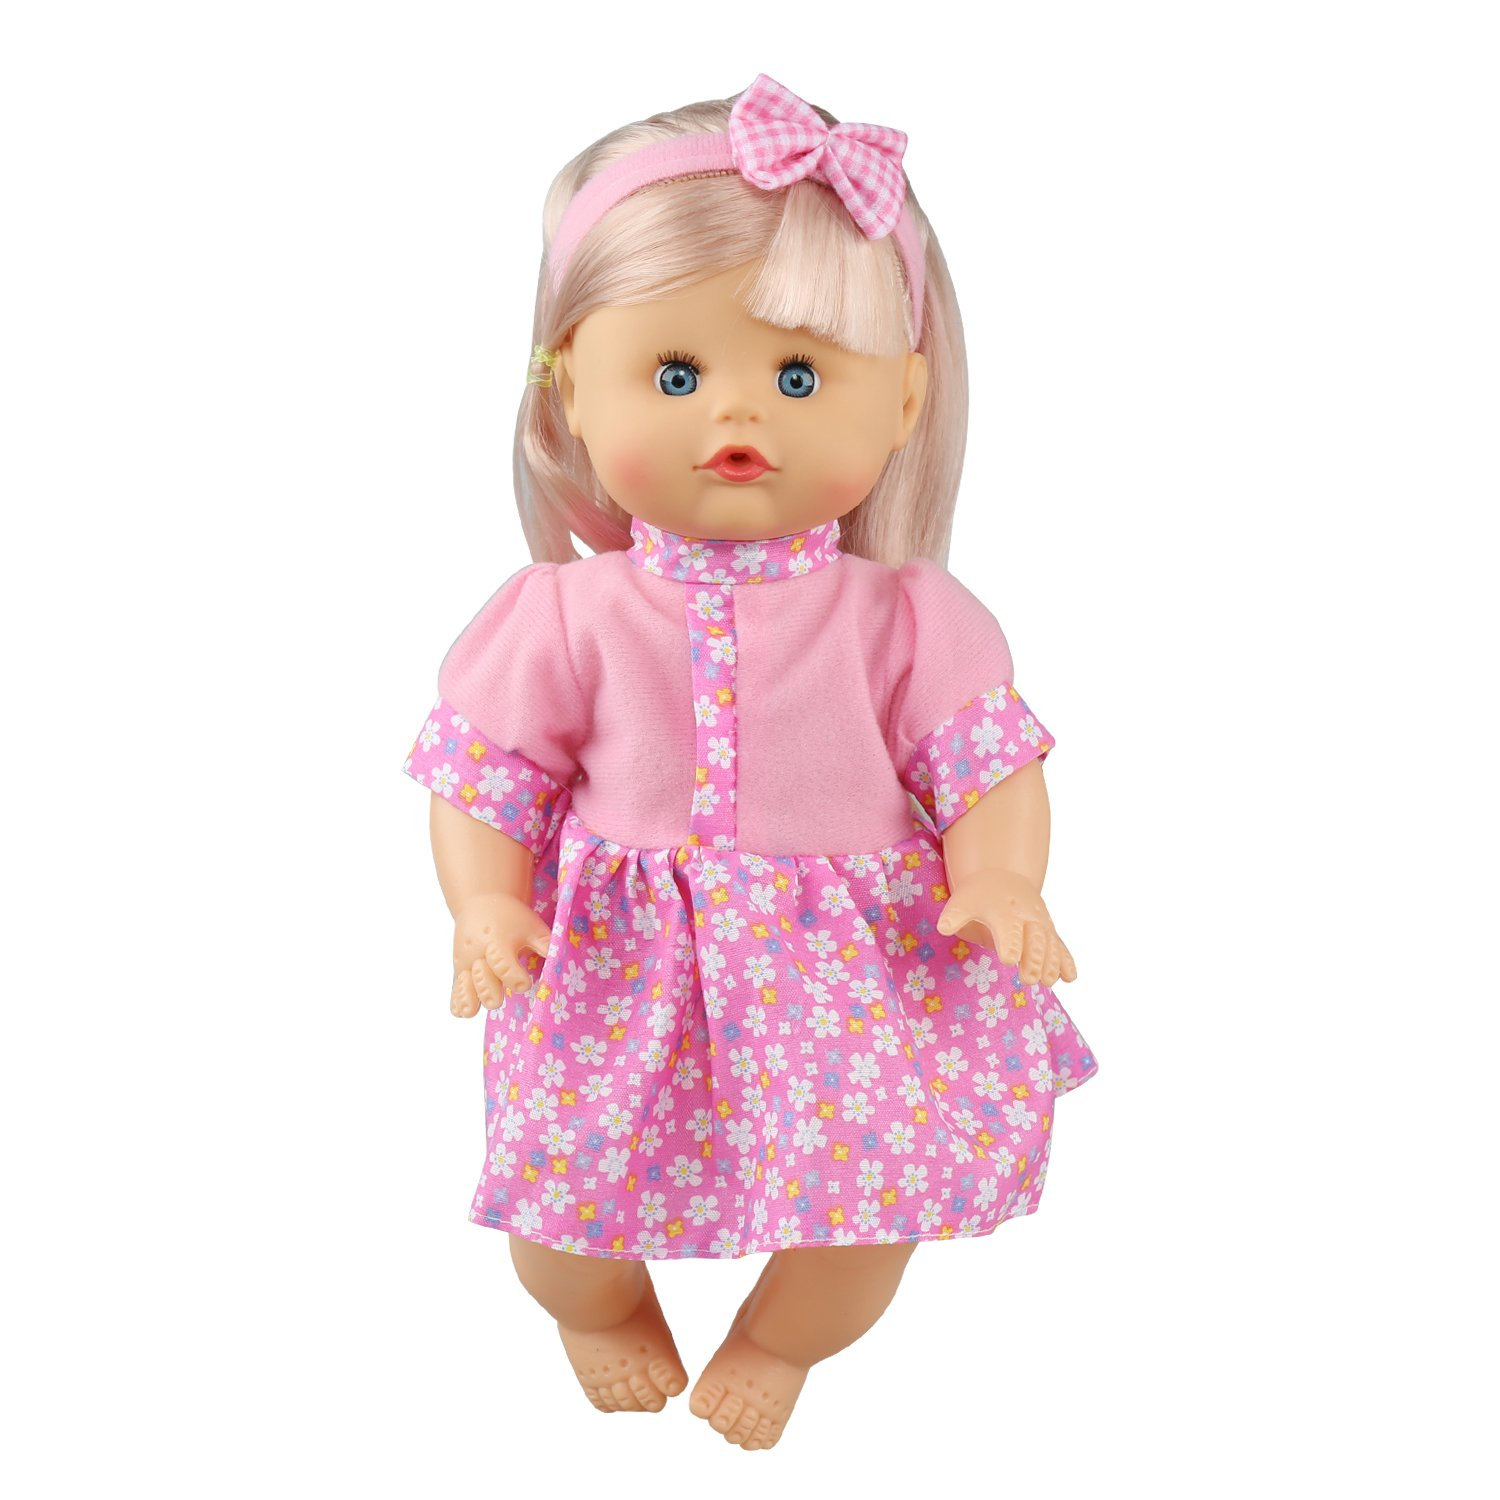 Pack of 12 Fit for 12 14 Inches Alive Baby Doll Dresses